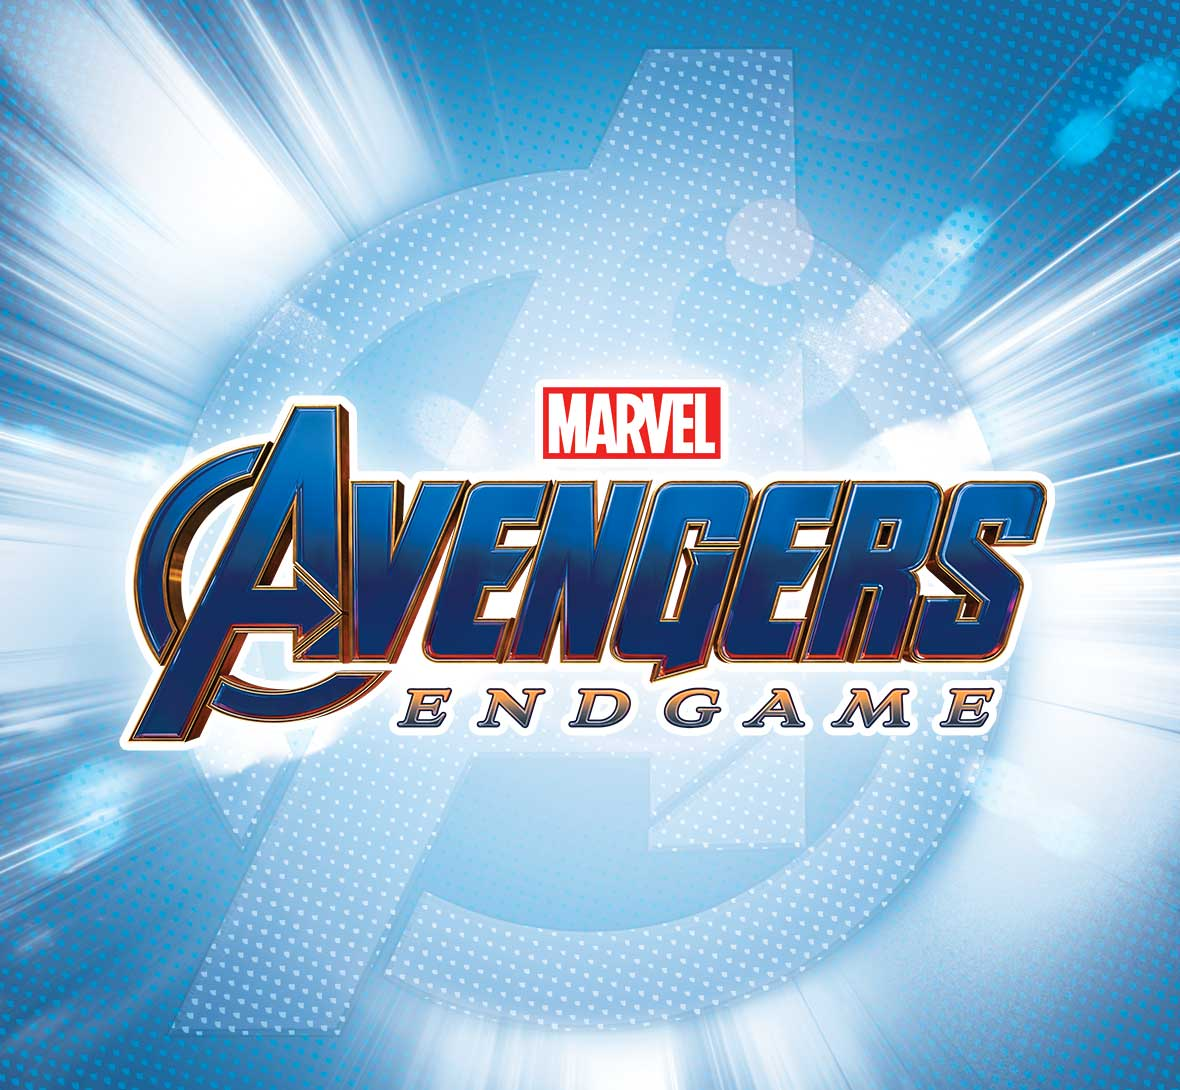 Get ready for Marvel Avengers: Endgame with officially licensed merchandise from CafePress.